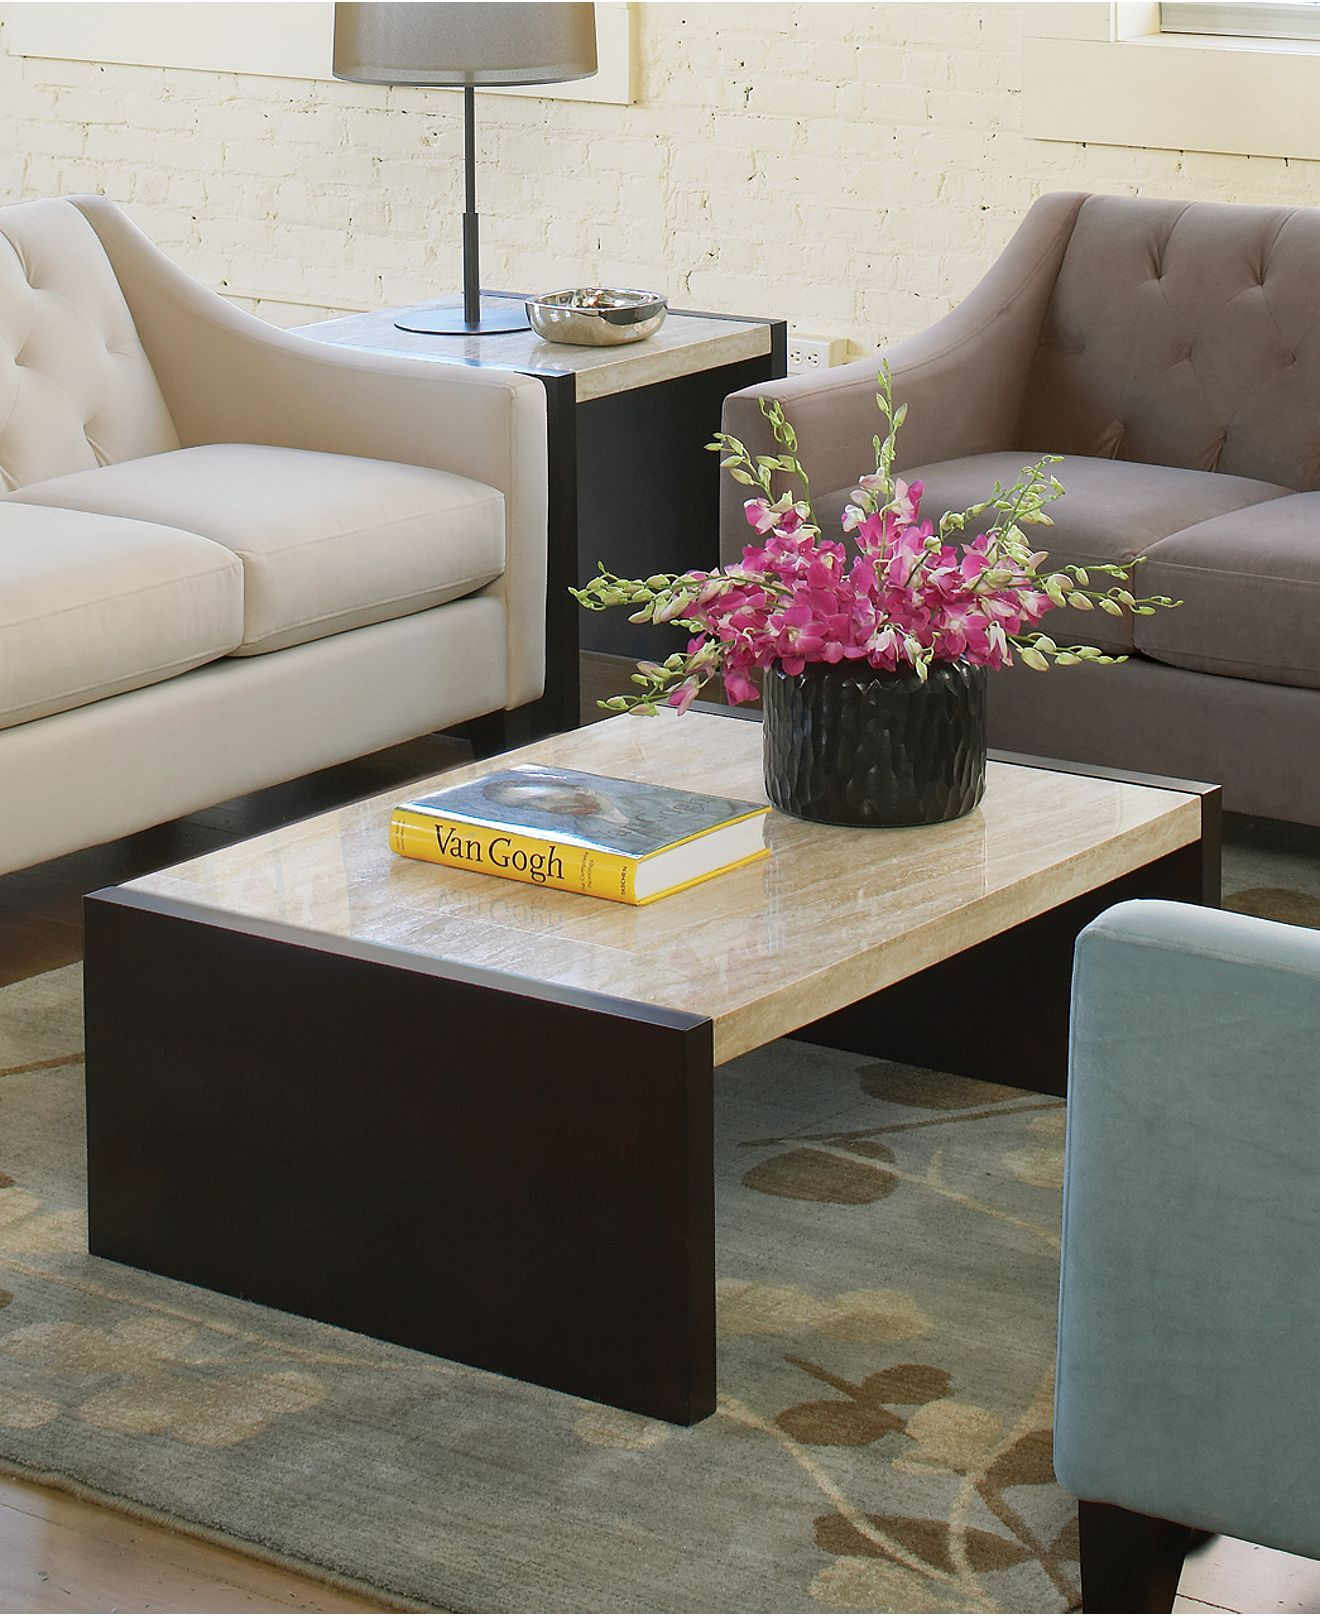 We Love This Travertine Coffee Table. It Would Make A